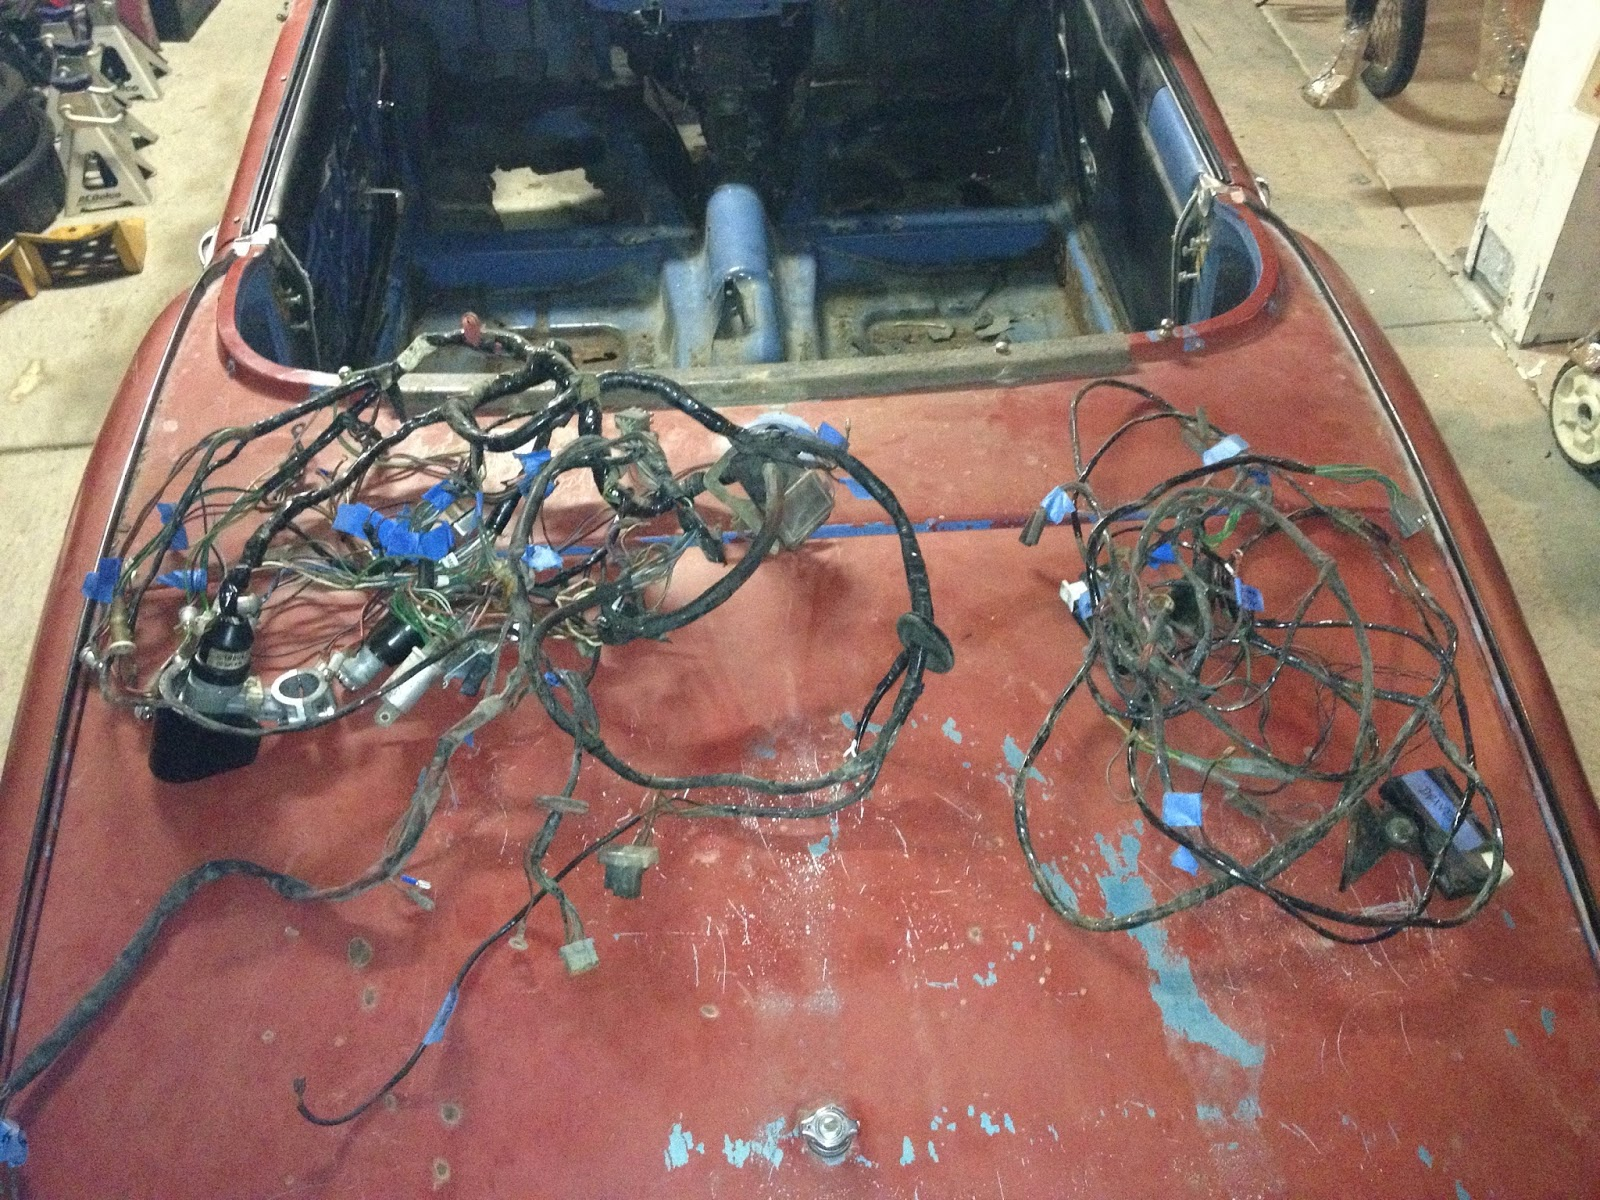 medium resolution of the wiring harnesses are out the one on the right is the rear harness with the seatbelt switches while the one on the left is the main harness with the